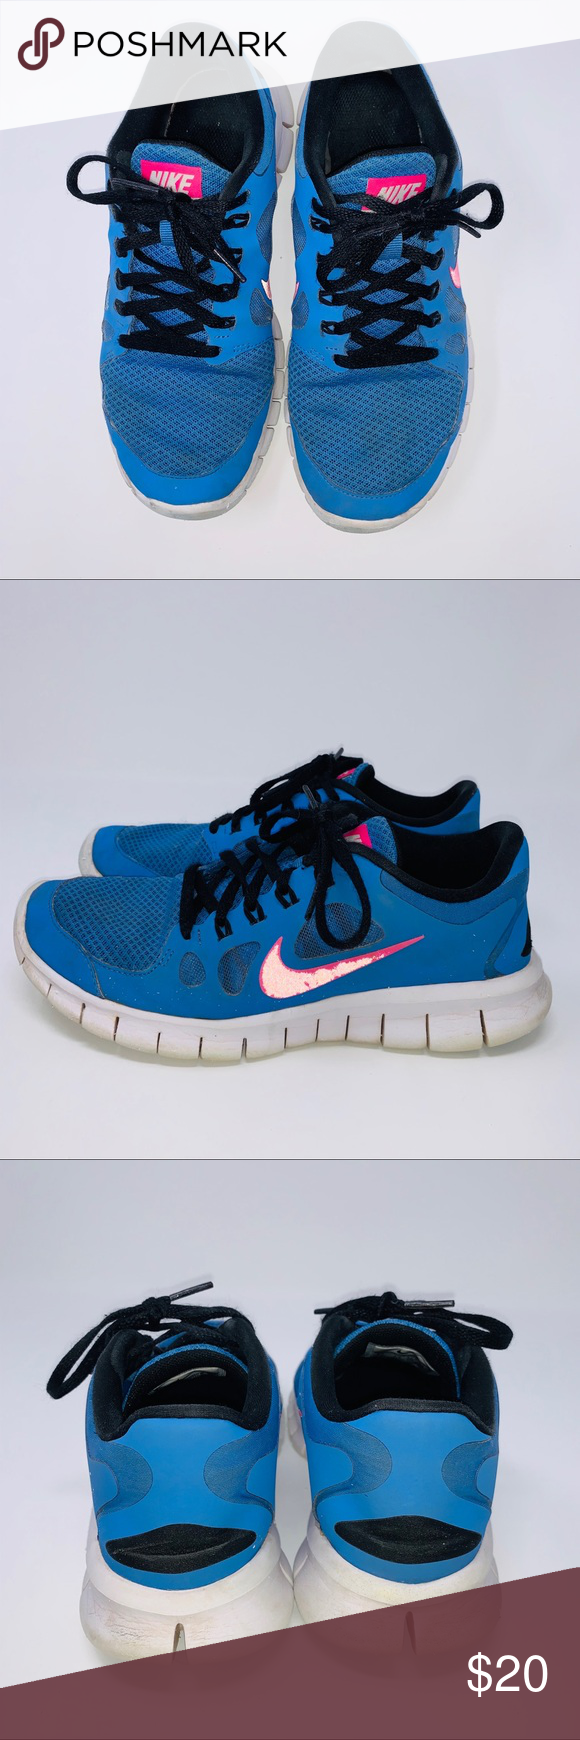 huge discount 871d2 51546 Girls Nike Free 5.0 Blue and Pink Sneakers Size 6Y Girls ...